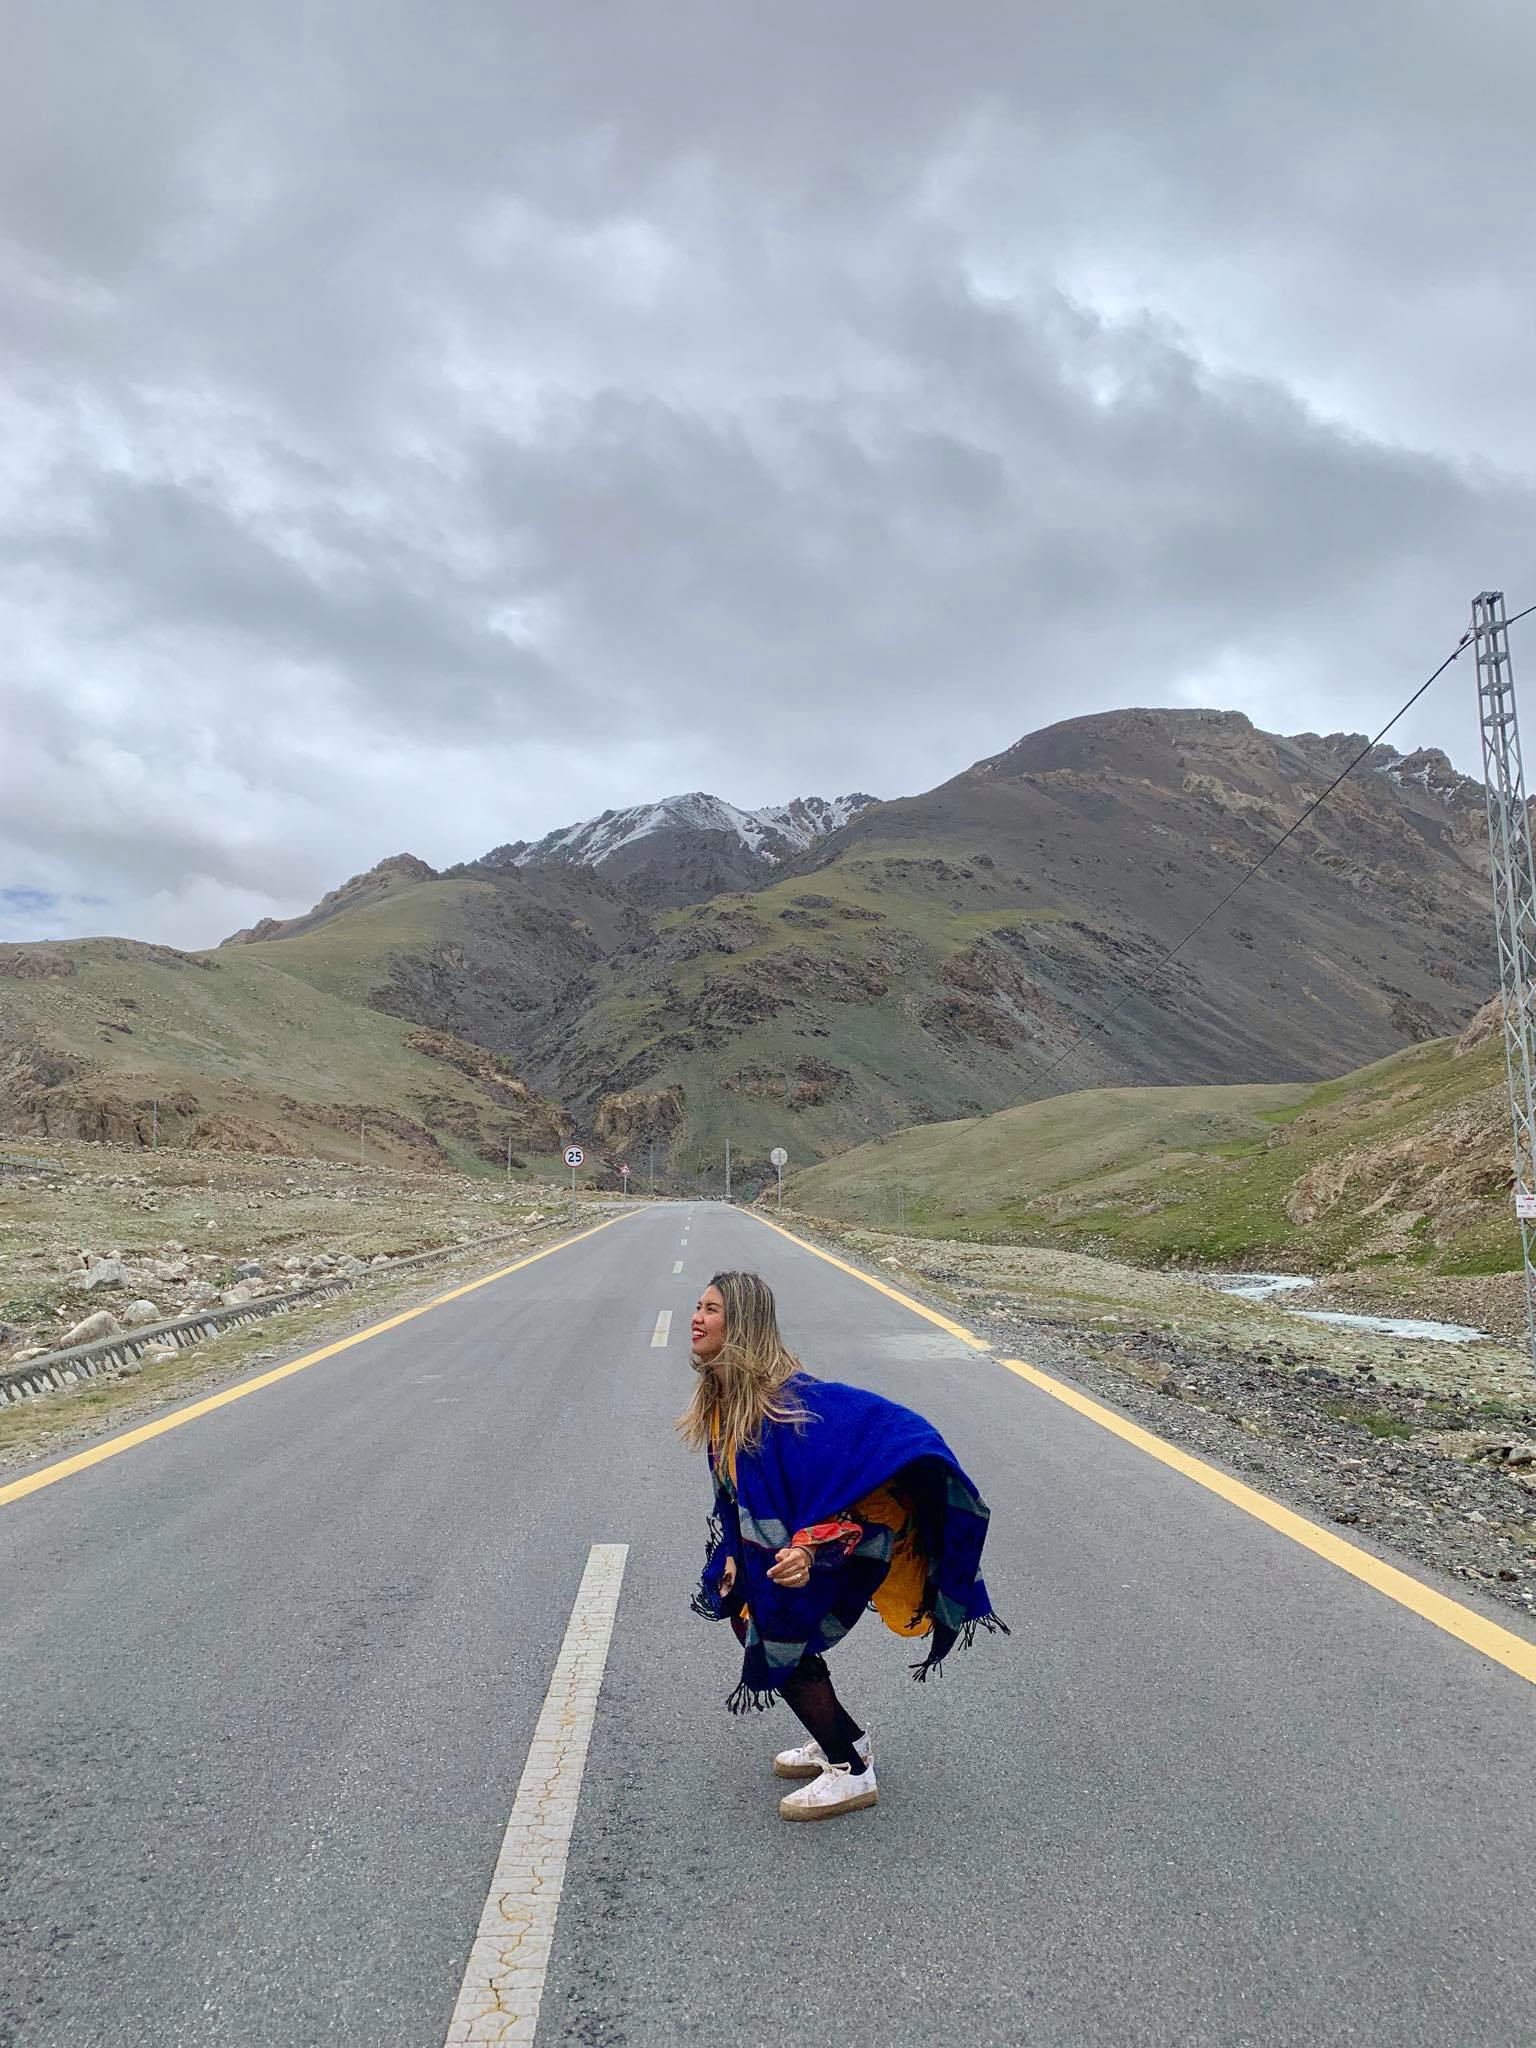 Kach Solo Travels in 2019 Driving in North Hunza Valley to Khunjerab Pass20.jpg